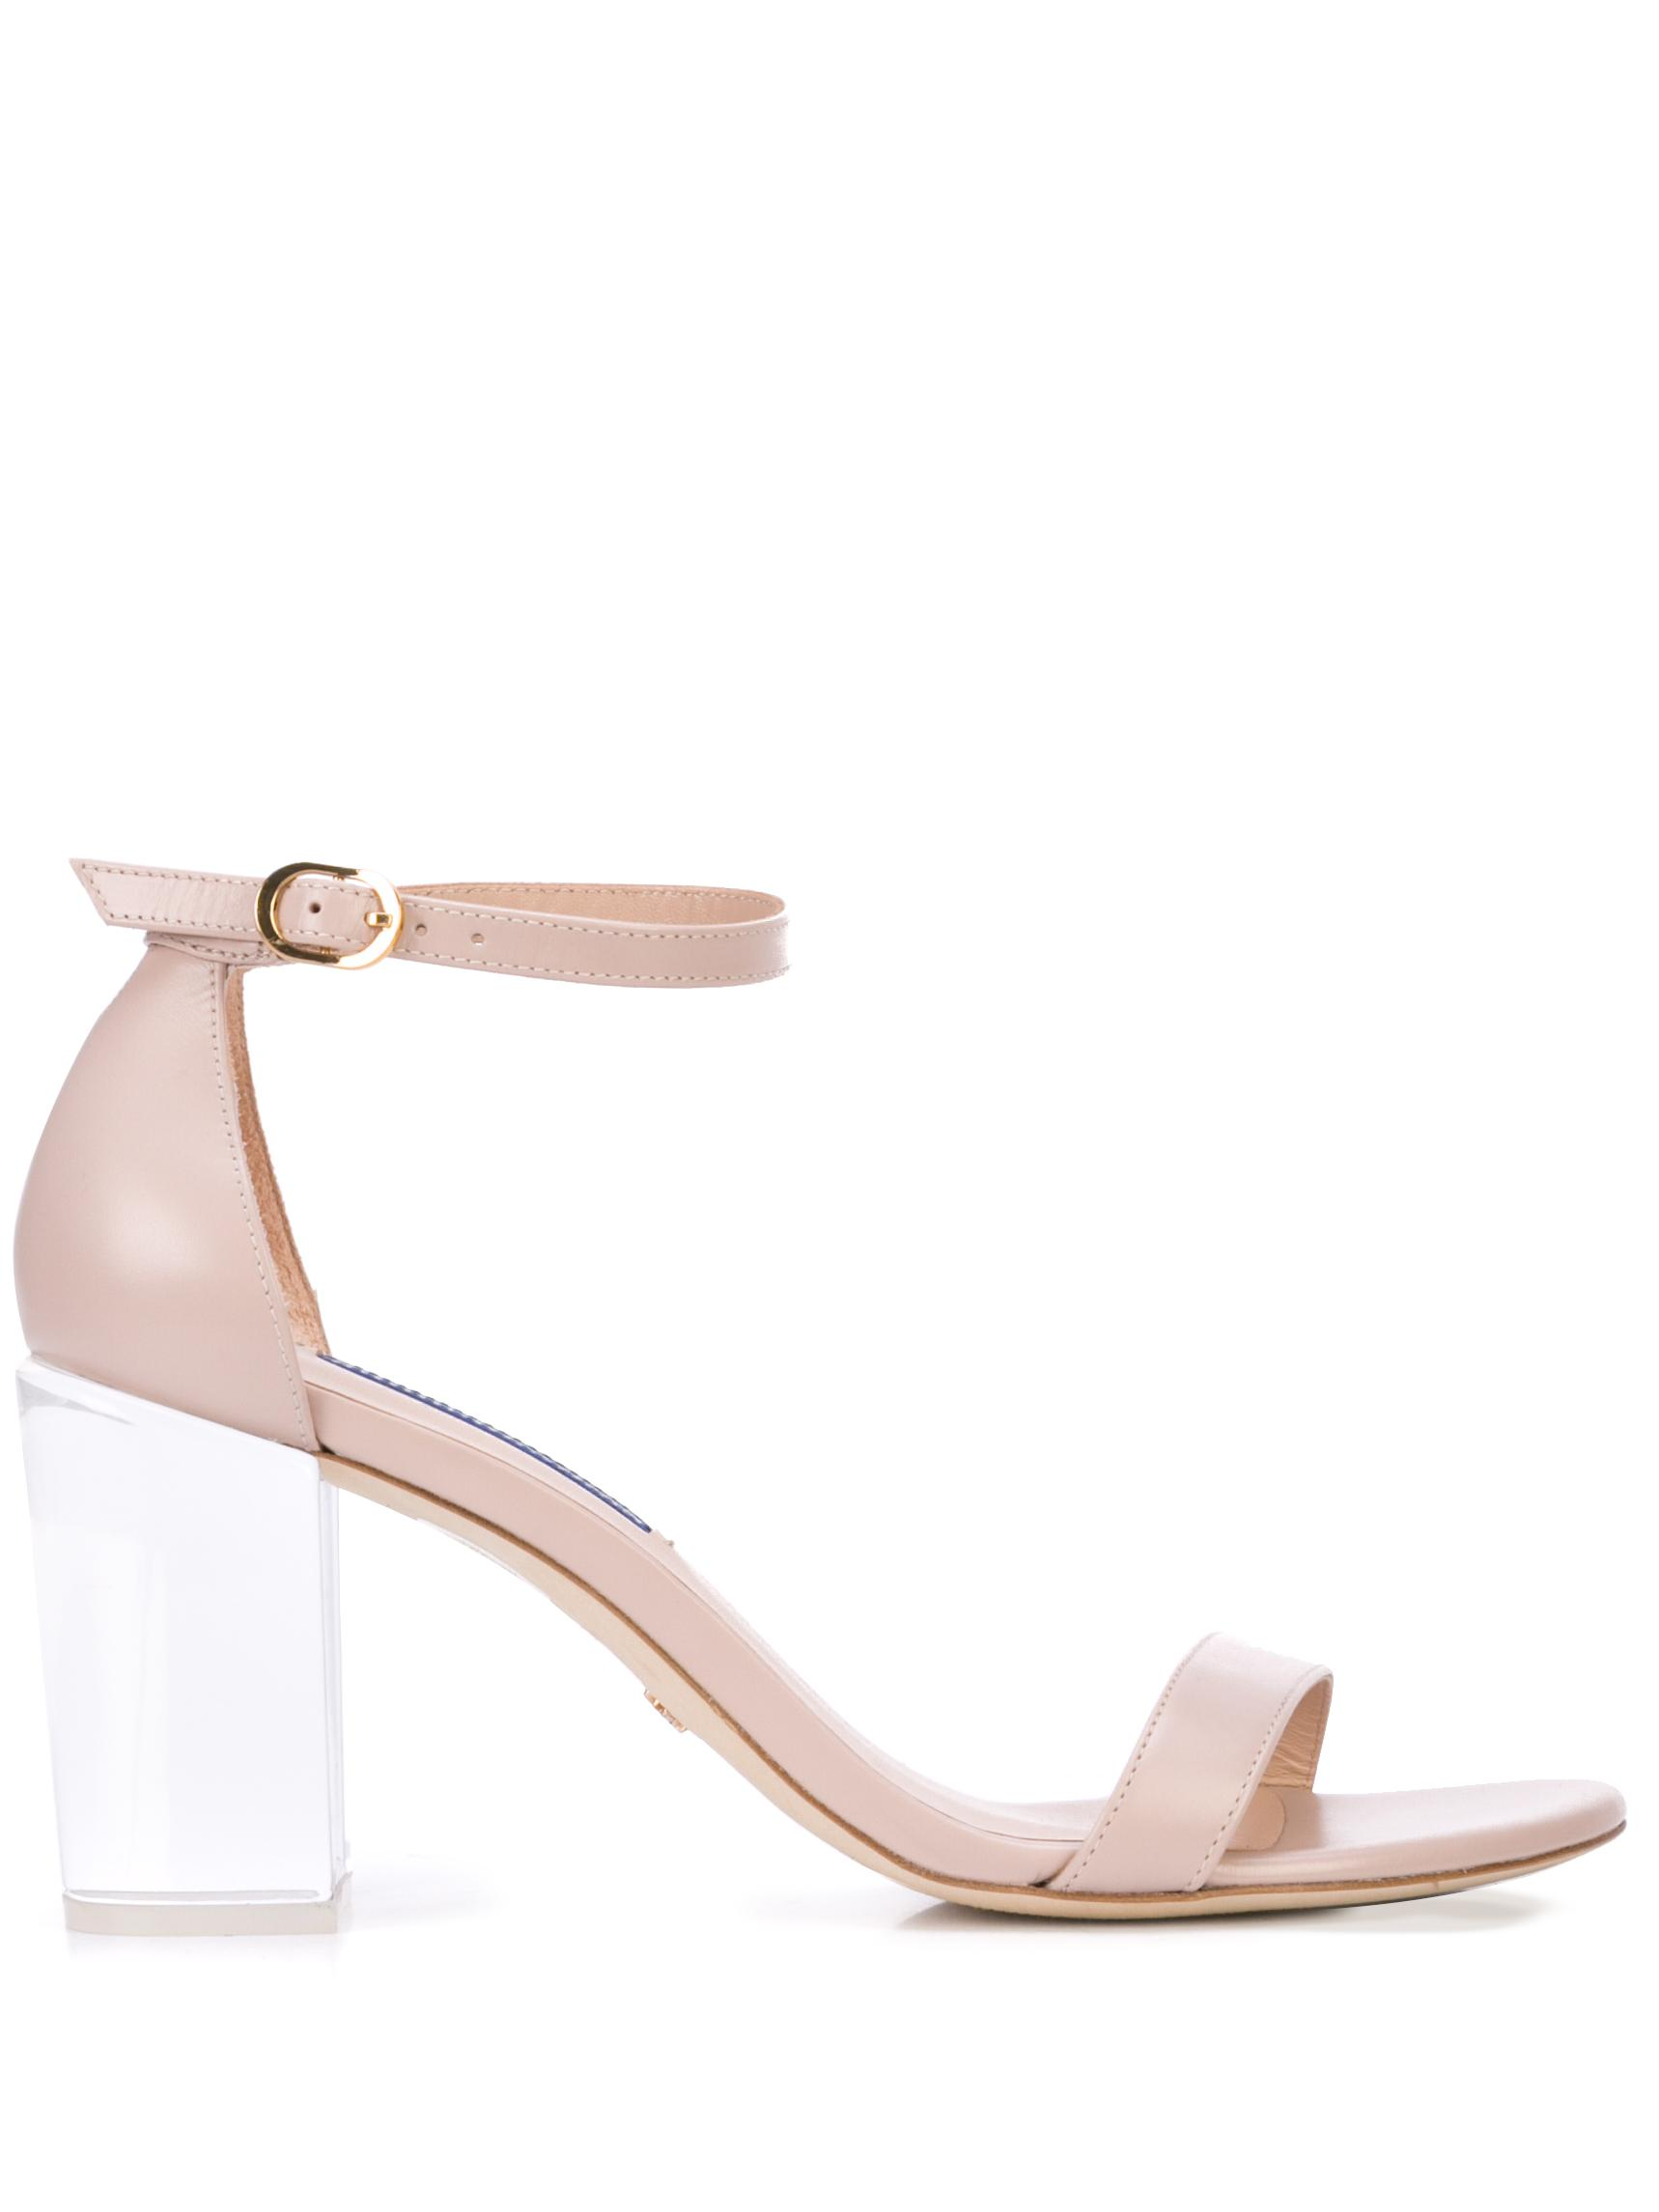 Lucite Block Heel Sandal With Ankle Strap